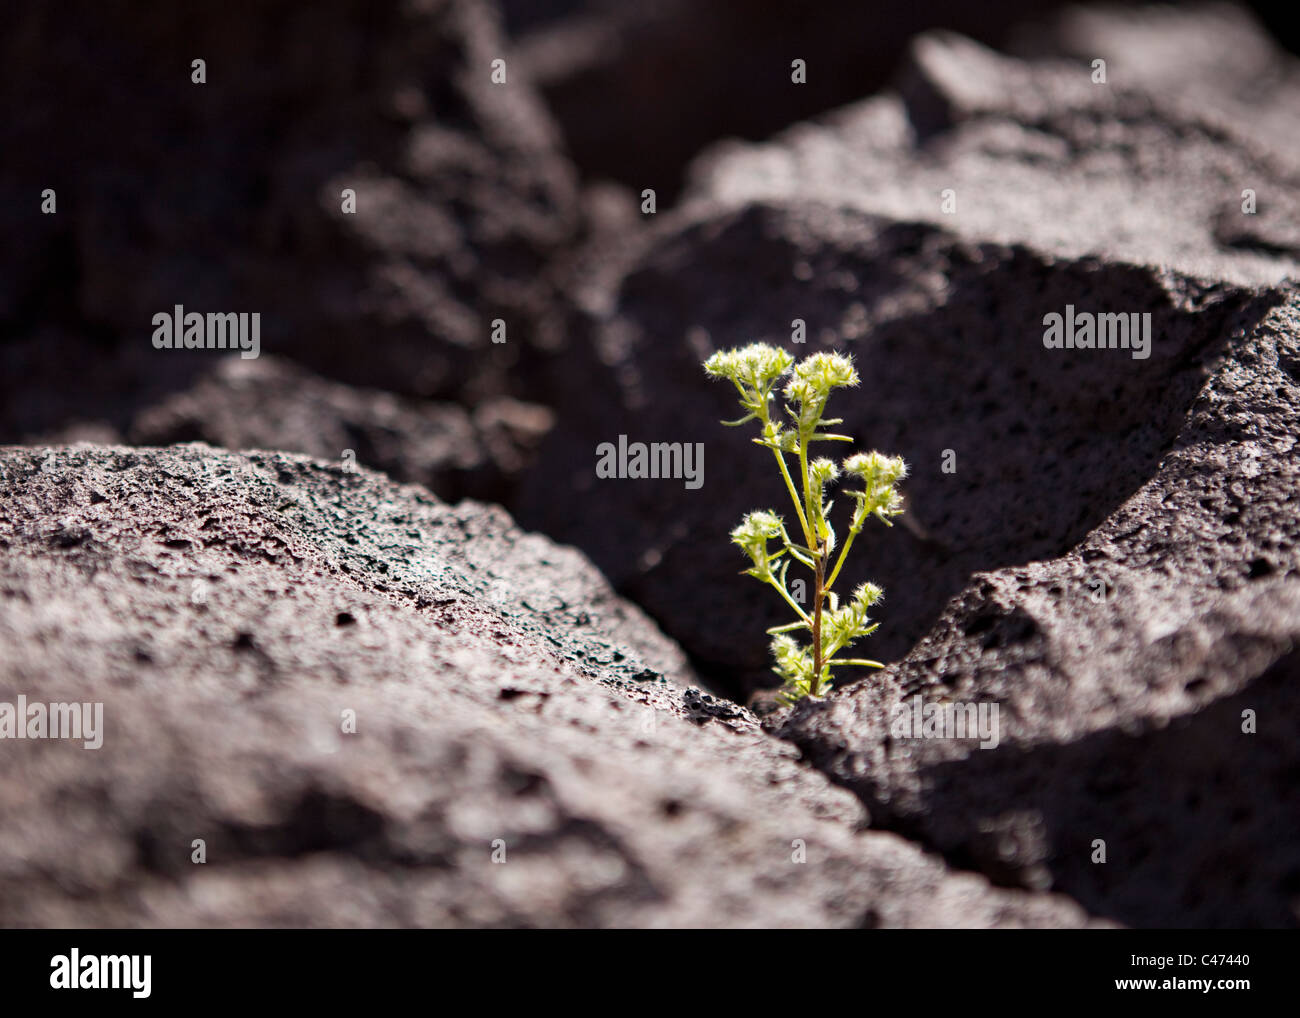 A plant growing out of a thin crack in igneous volcanic rock (lava rock) - California USA - Stock Image